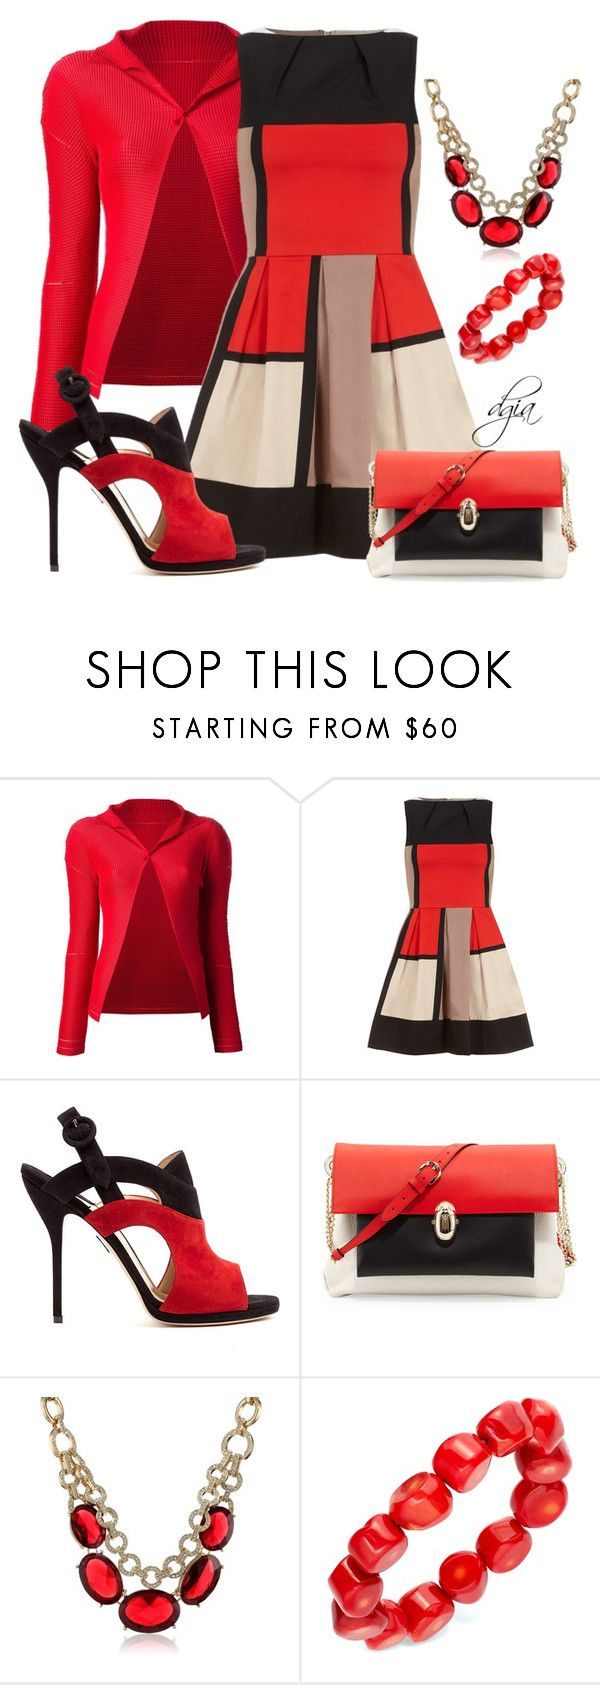 """""""Style this dress"""" by dgia ❤ liked on Polyvore featuring Issey Miyake Cauliflower, Dorothy Perkins, Paul Andrew, Christian Louboutin, Anne Klein and Avalonia Road"""